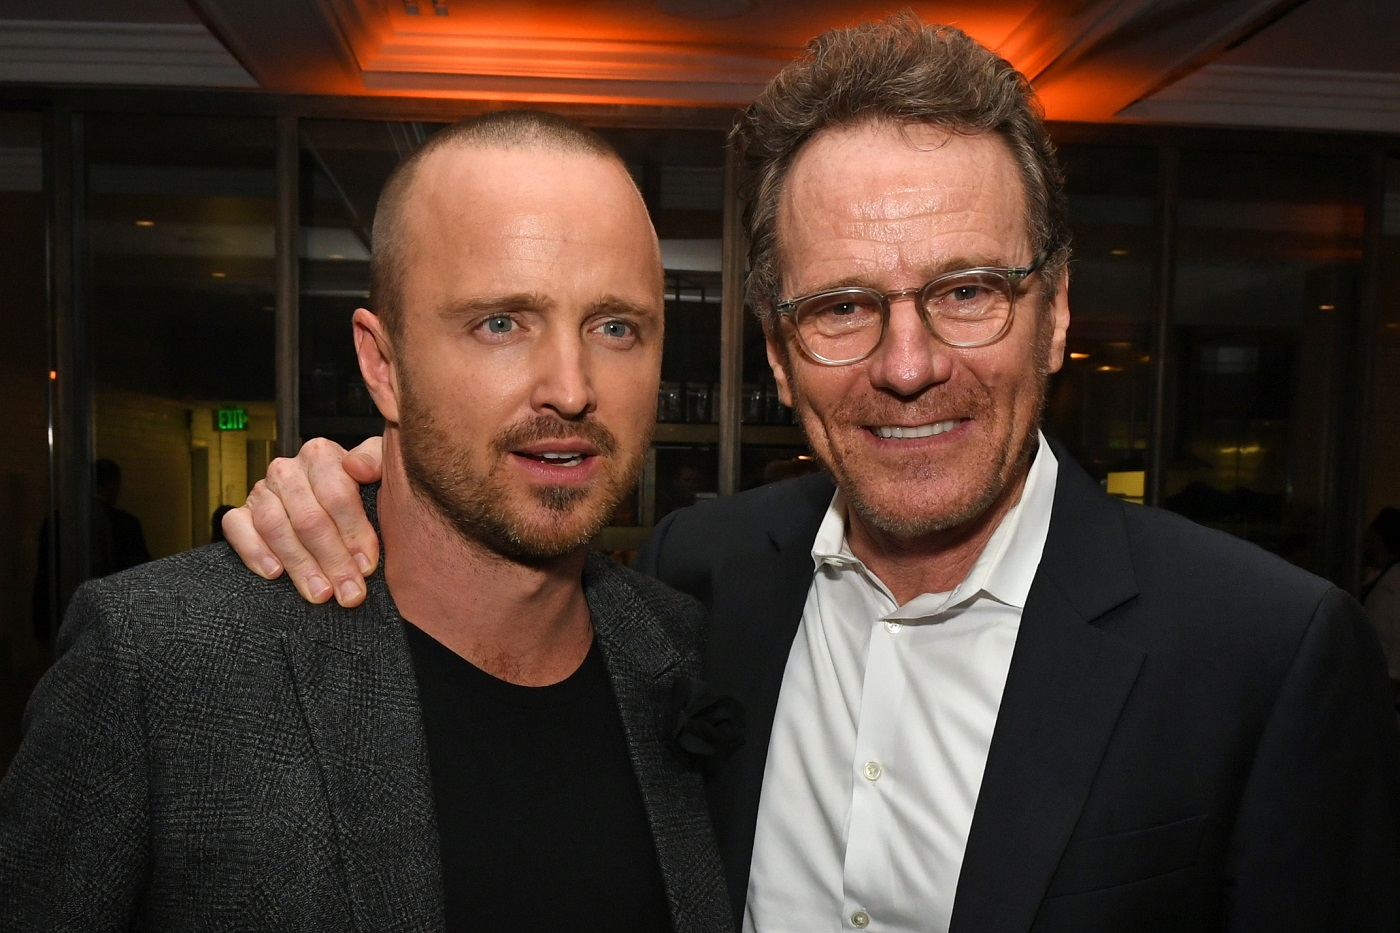 Aaron Paul and Bryan Cranston appeared on The X-Files before Breaking Bad